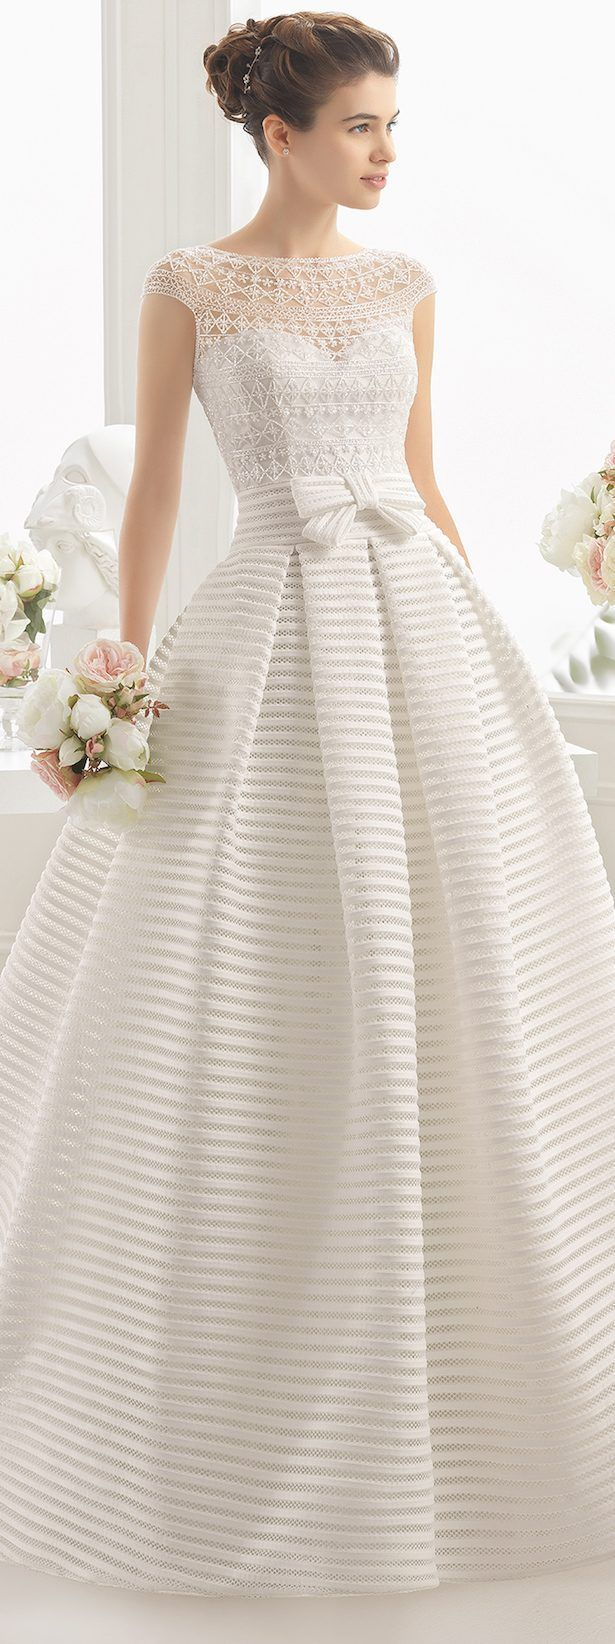 Wedding Dress by Aire Barcelona 2017 Bridal Collection - I like the shape, but not the fabric or lace...